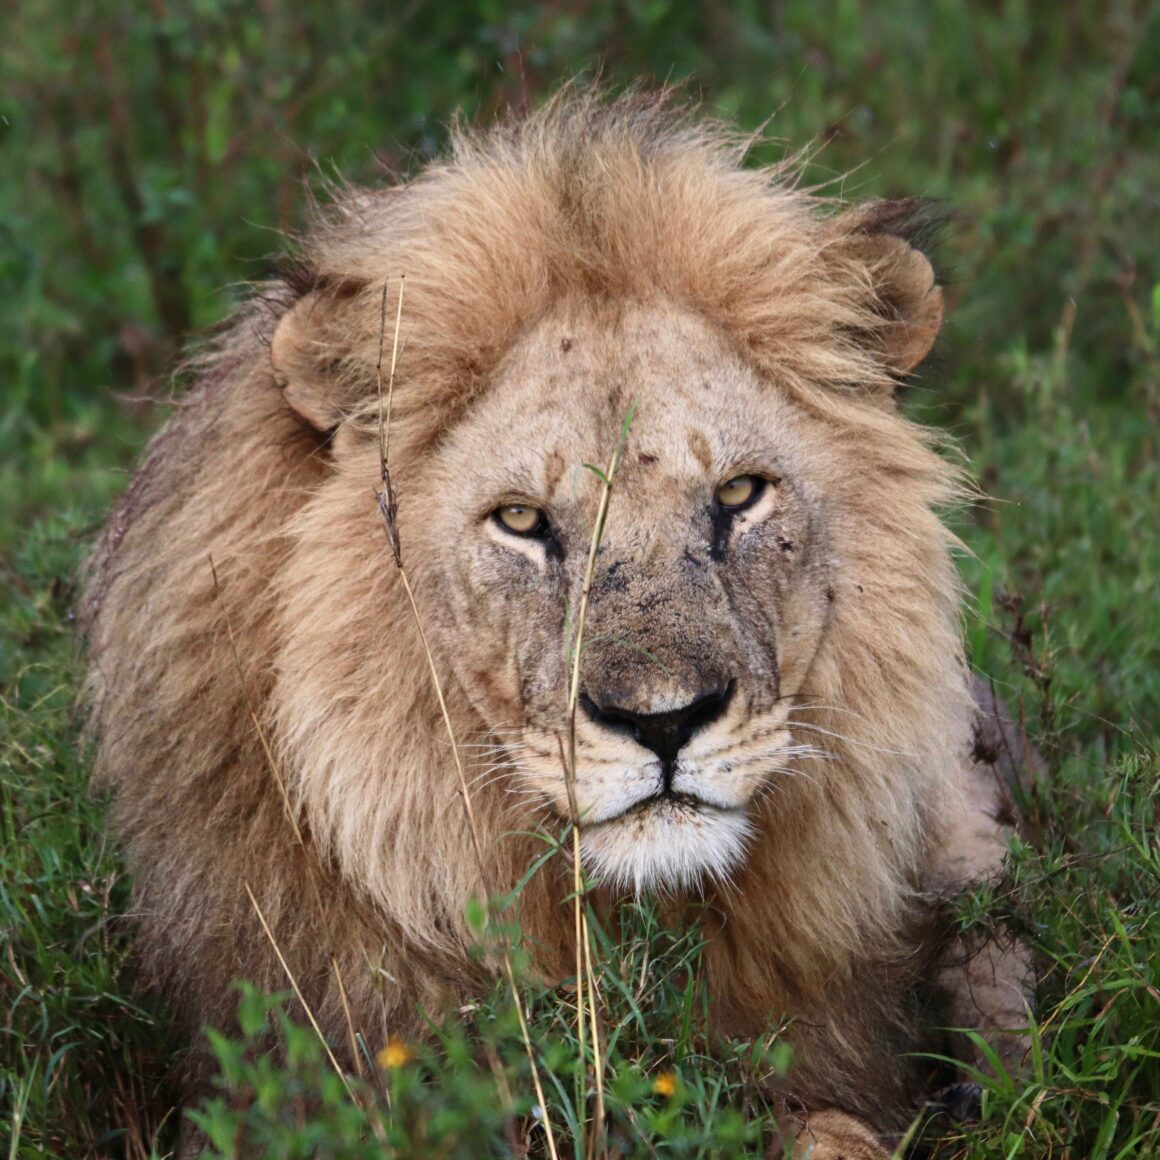 Male lion in the Serengeti National Park